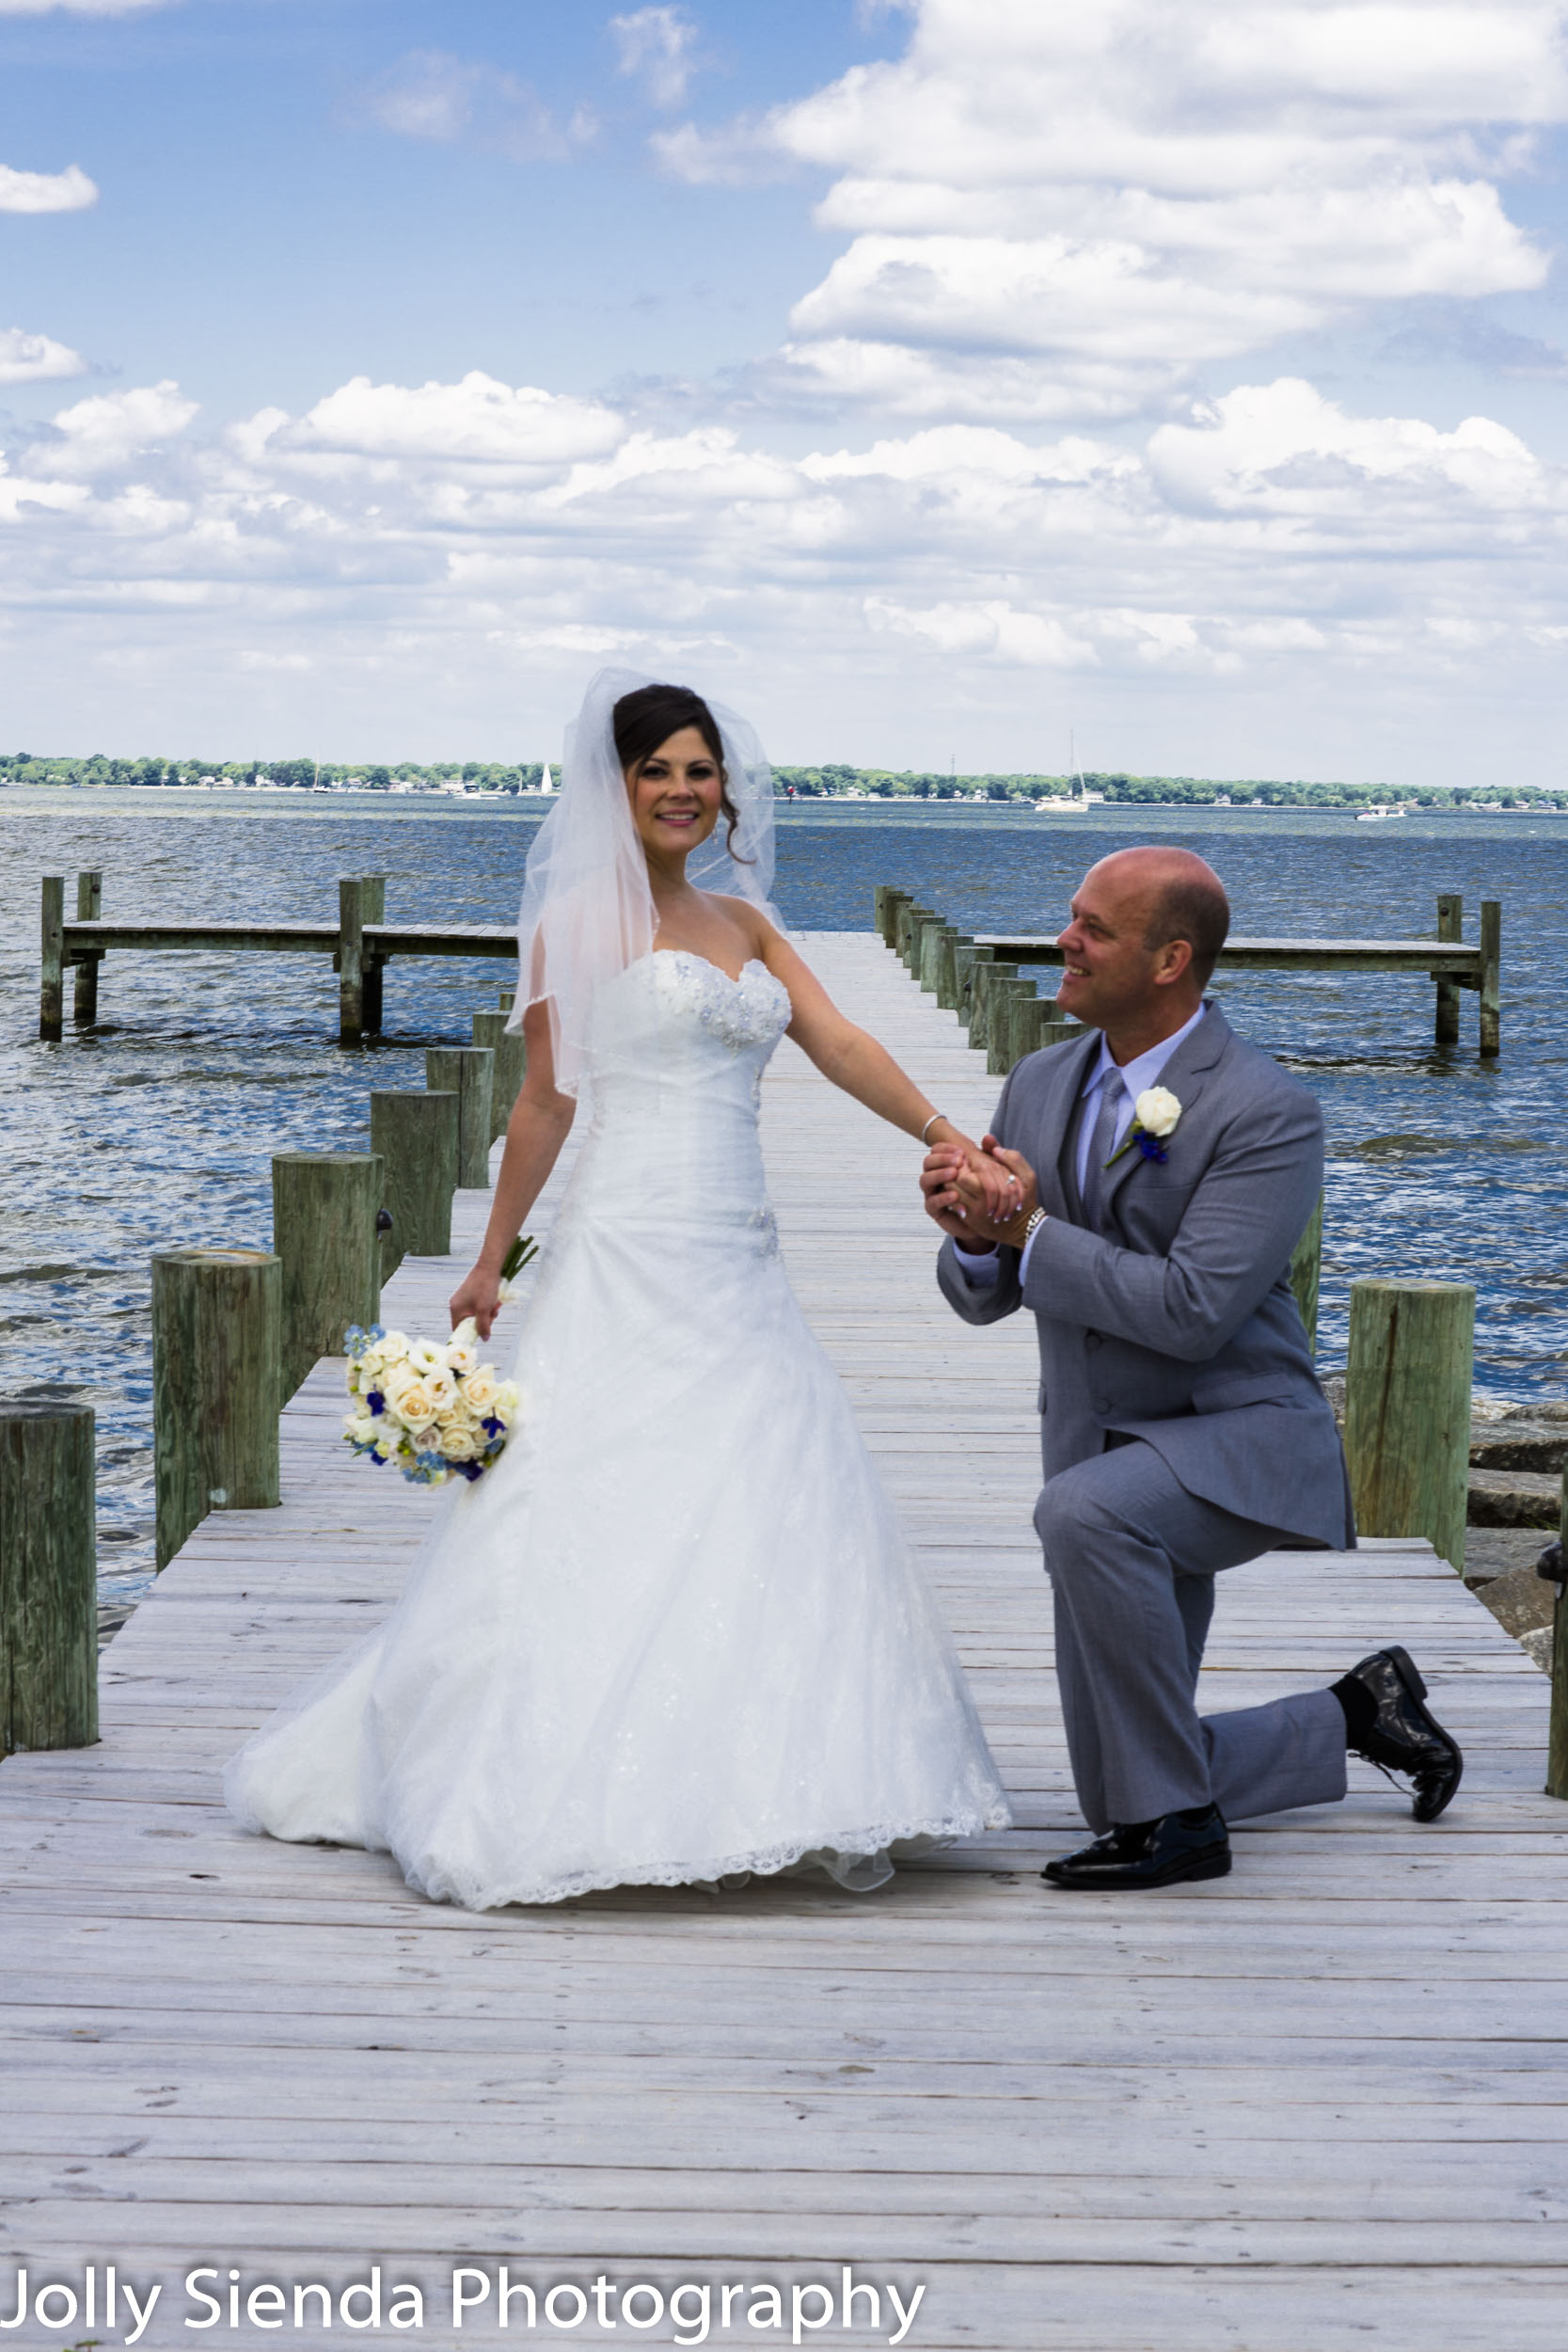 Groom Proposing to the Bride on the Waterfront